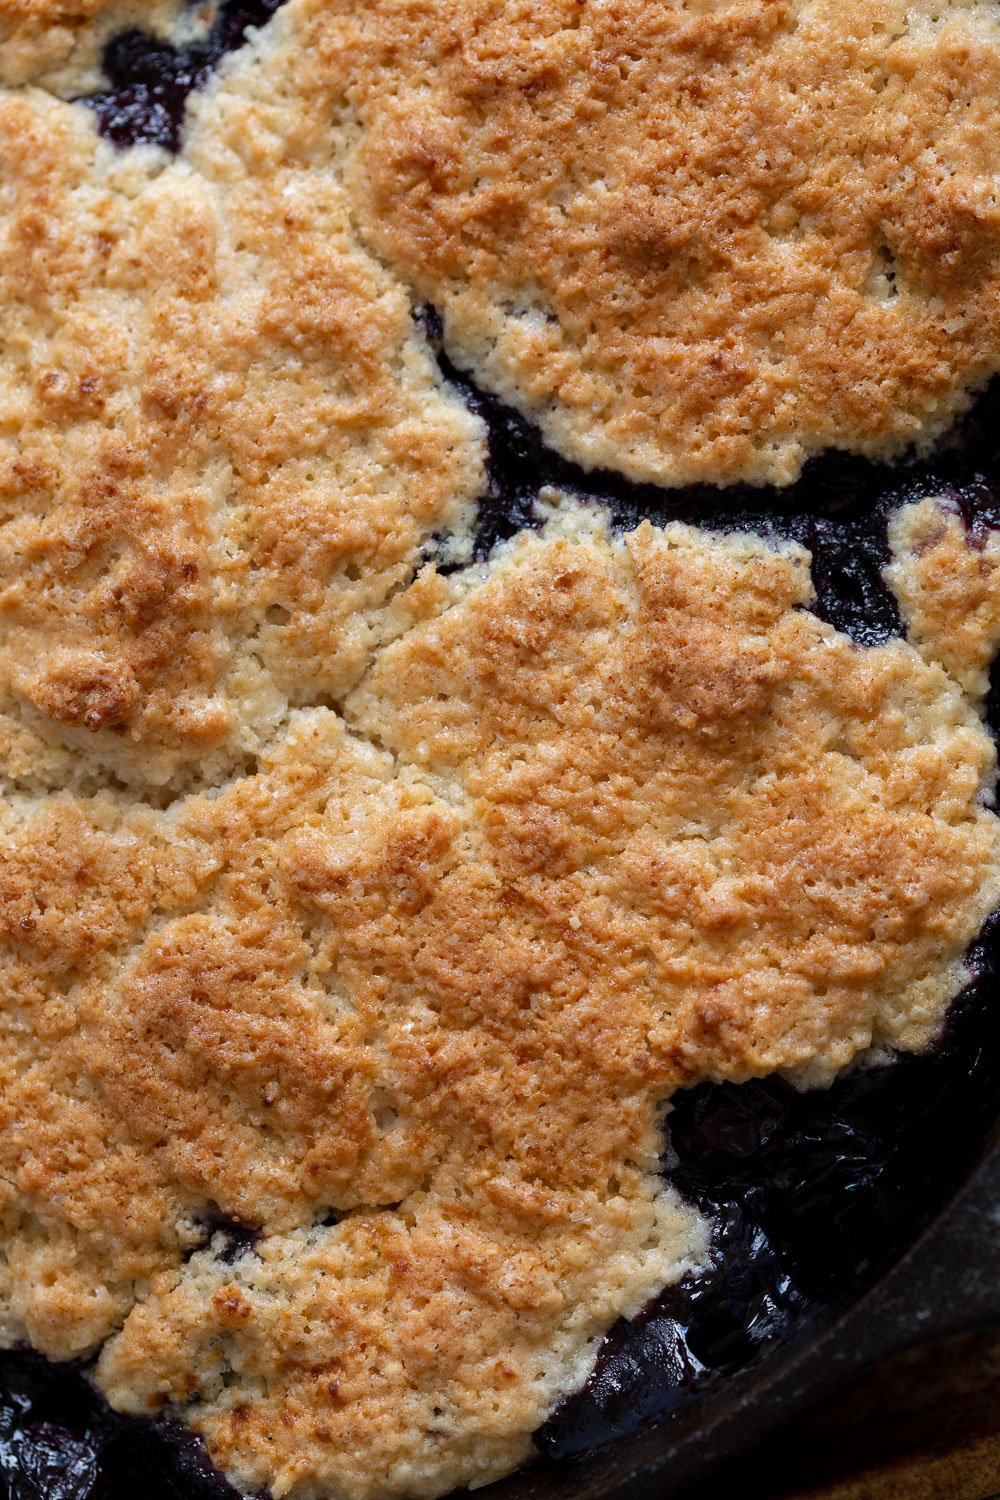 Baked Vegan Blueberry Cobbler close up view